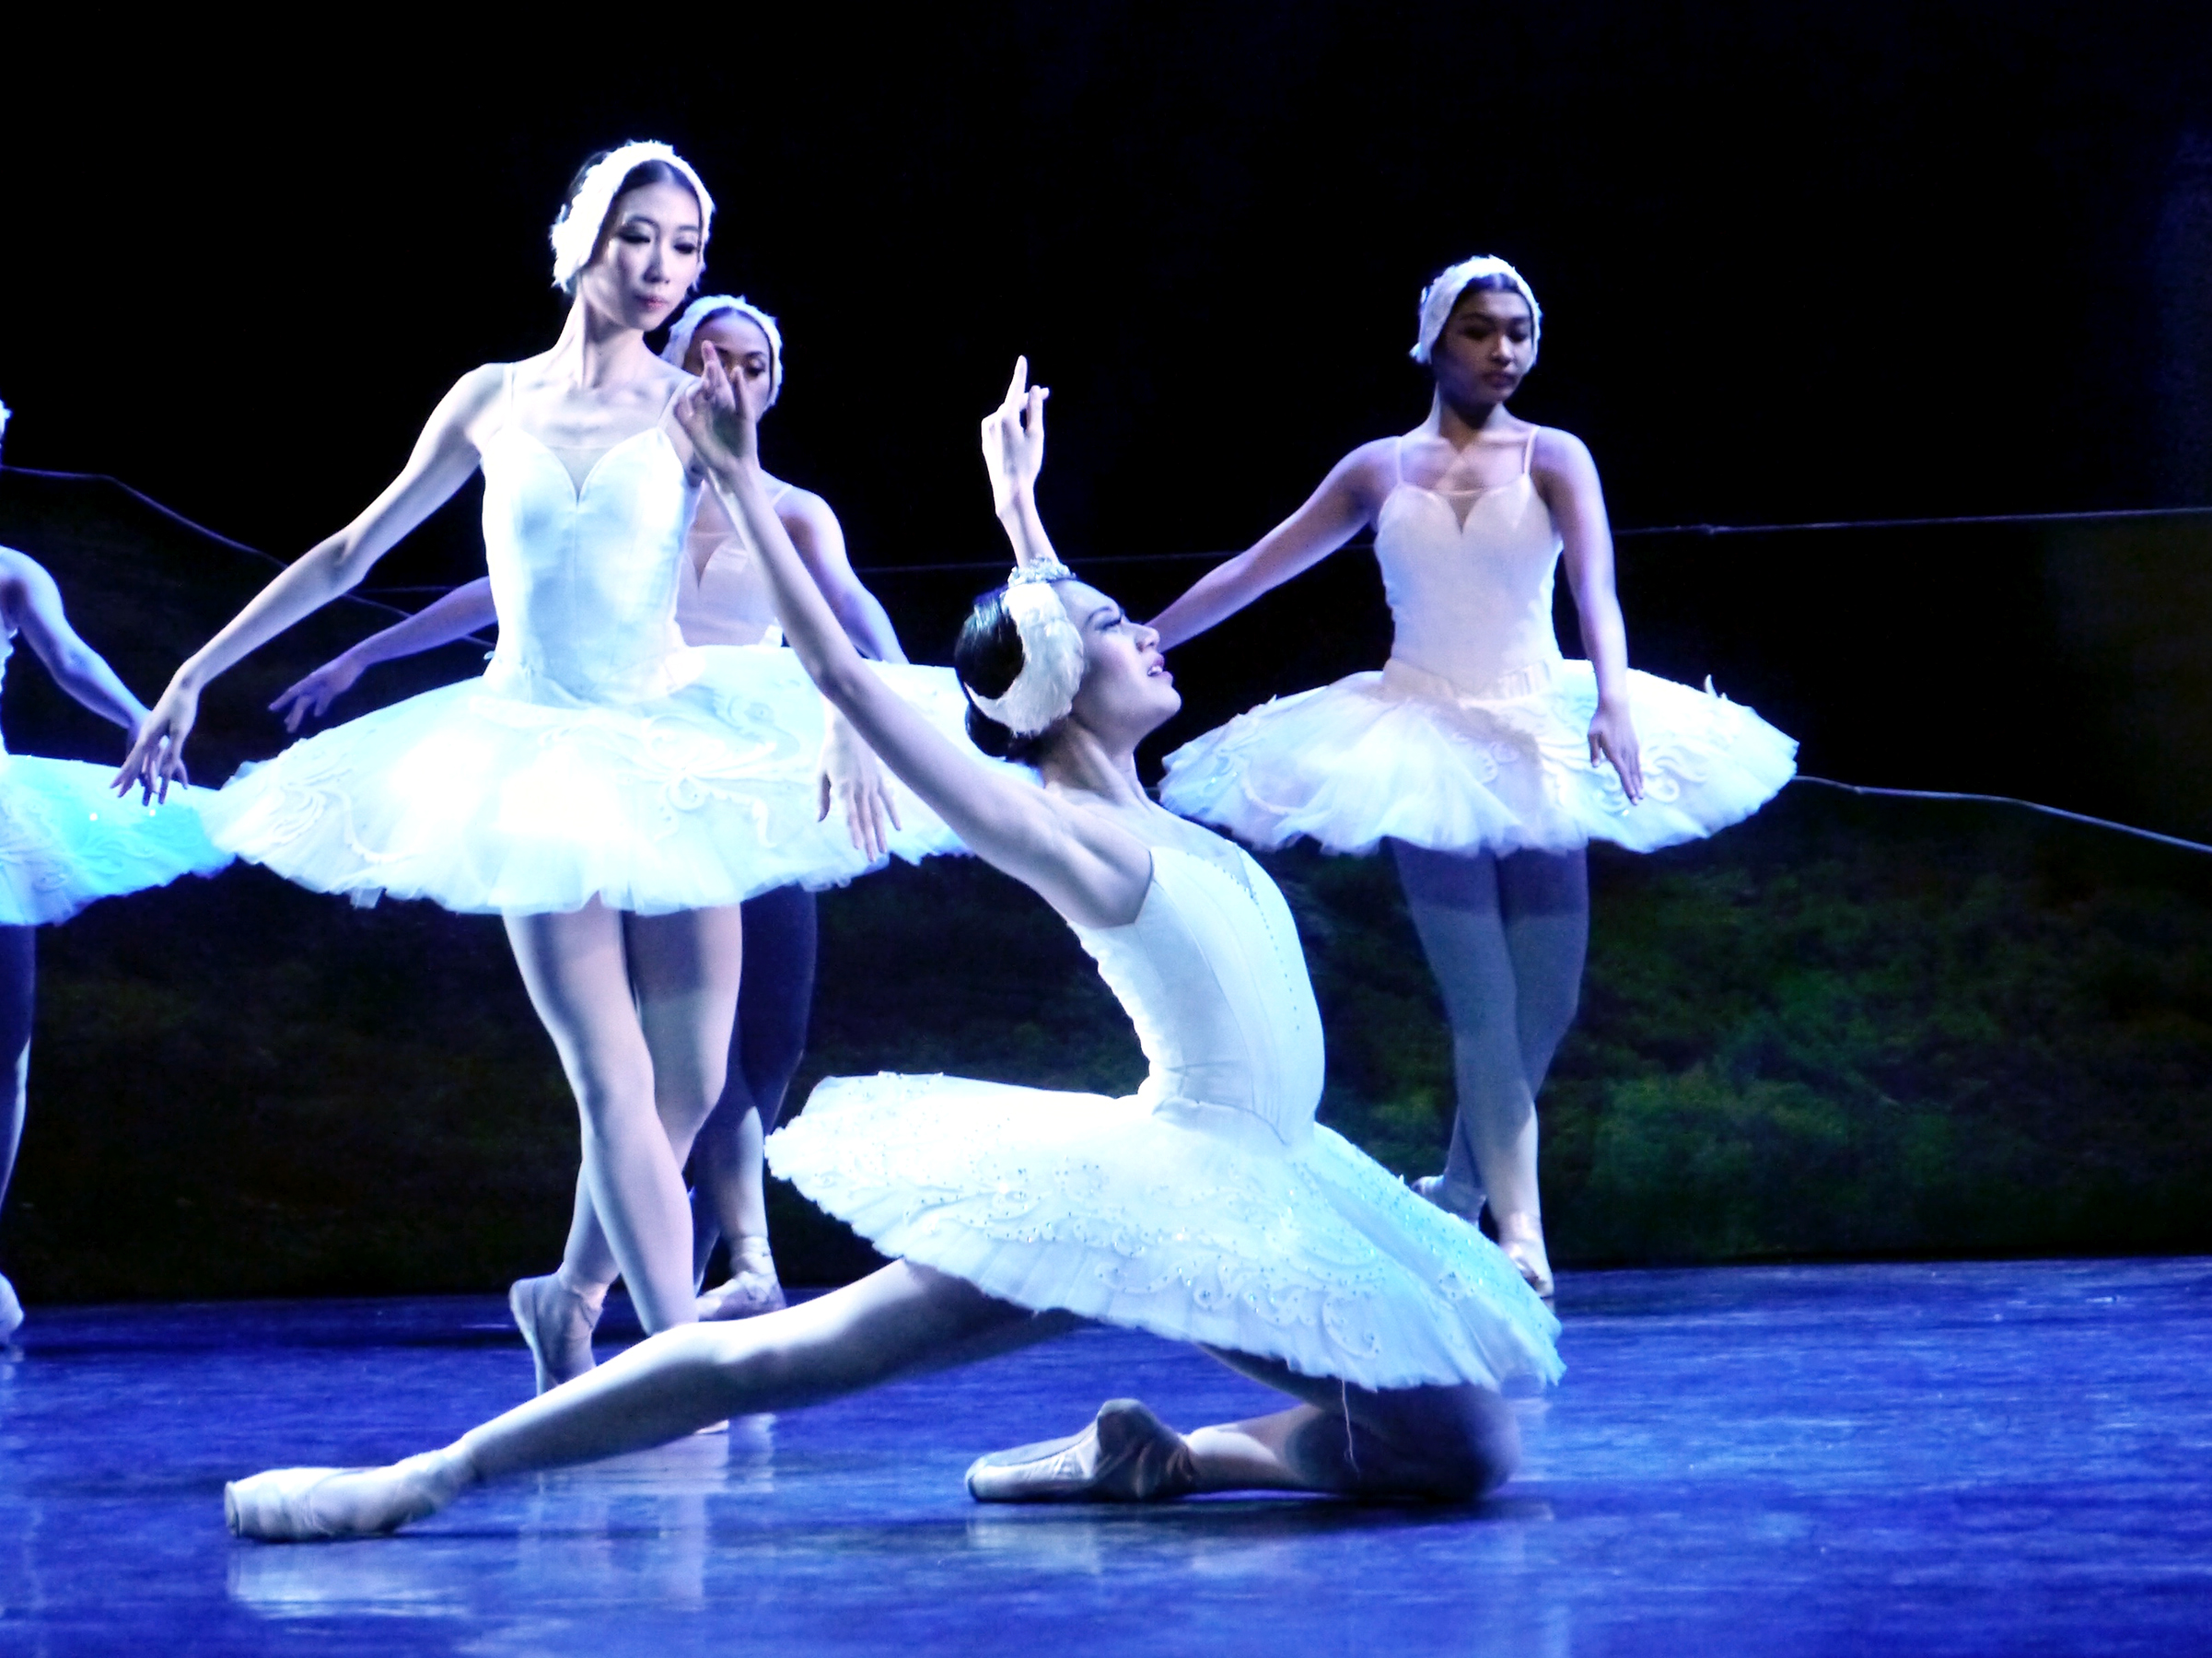 Monique (rightmost) was part of the corps in Ballet Manila's  Swan Lake  in 2017 featuring principal ballerina Abigail Oliveiro in the lead role. Photo by Giselle P. Kasilag